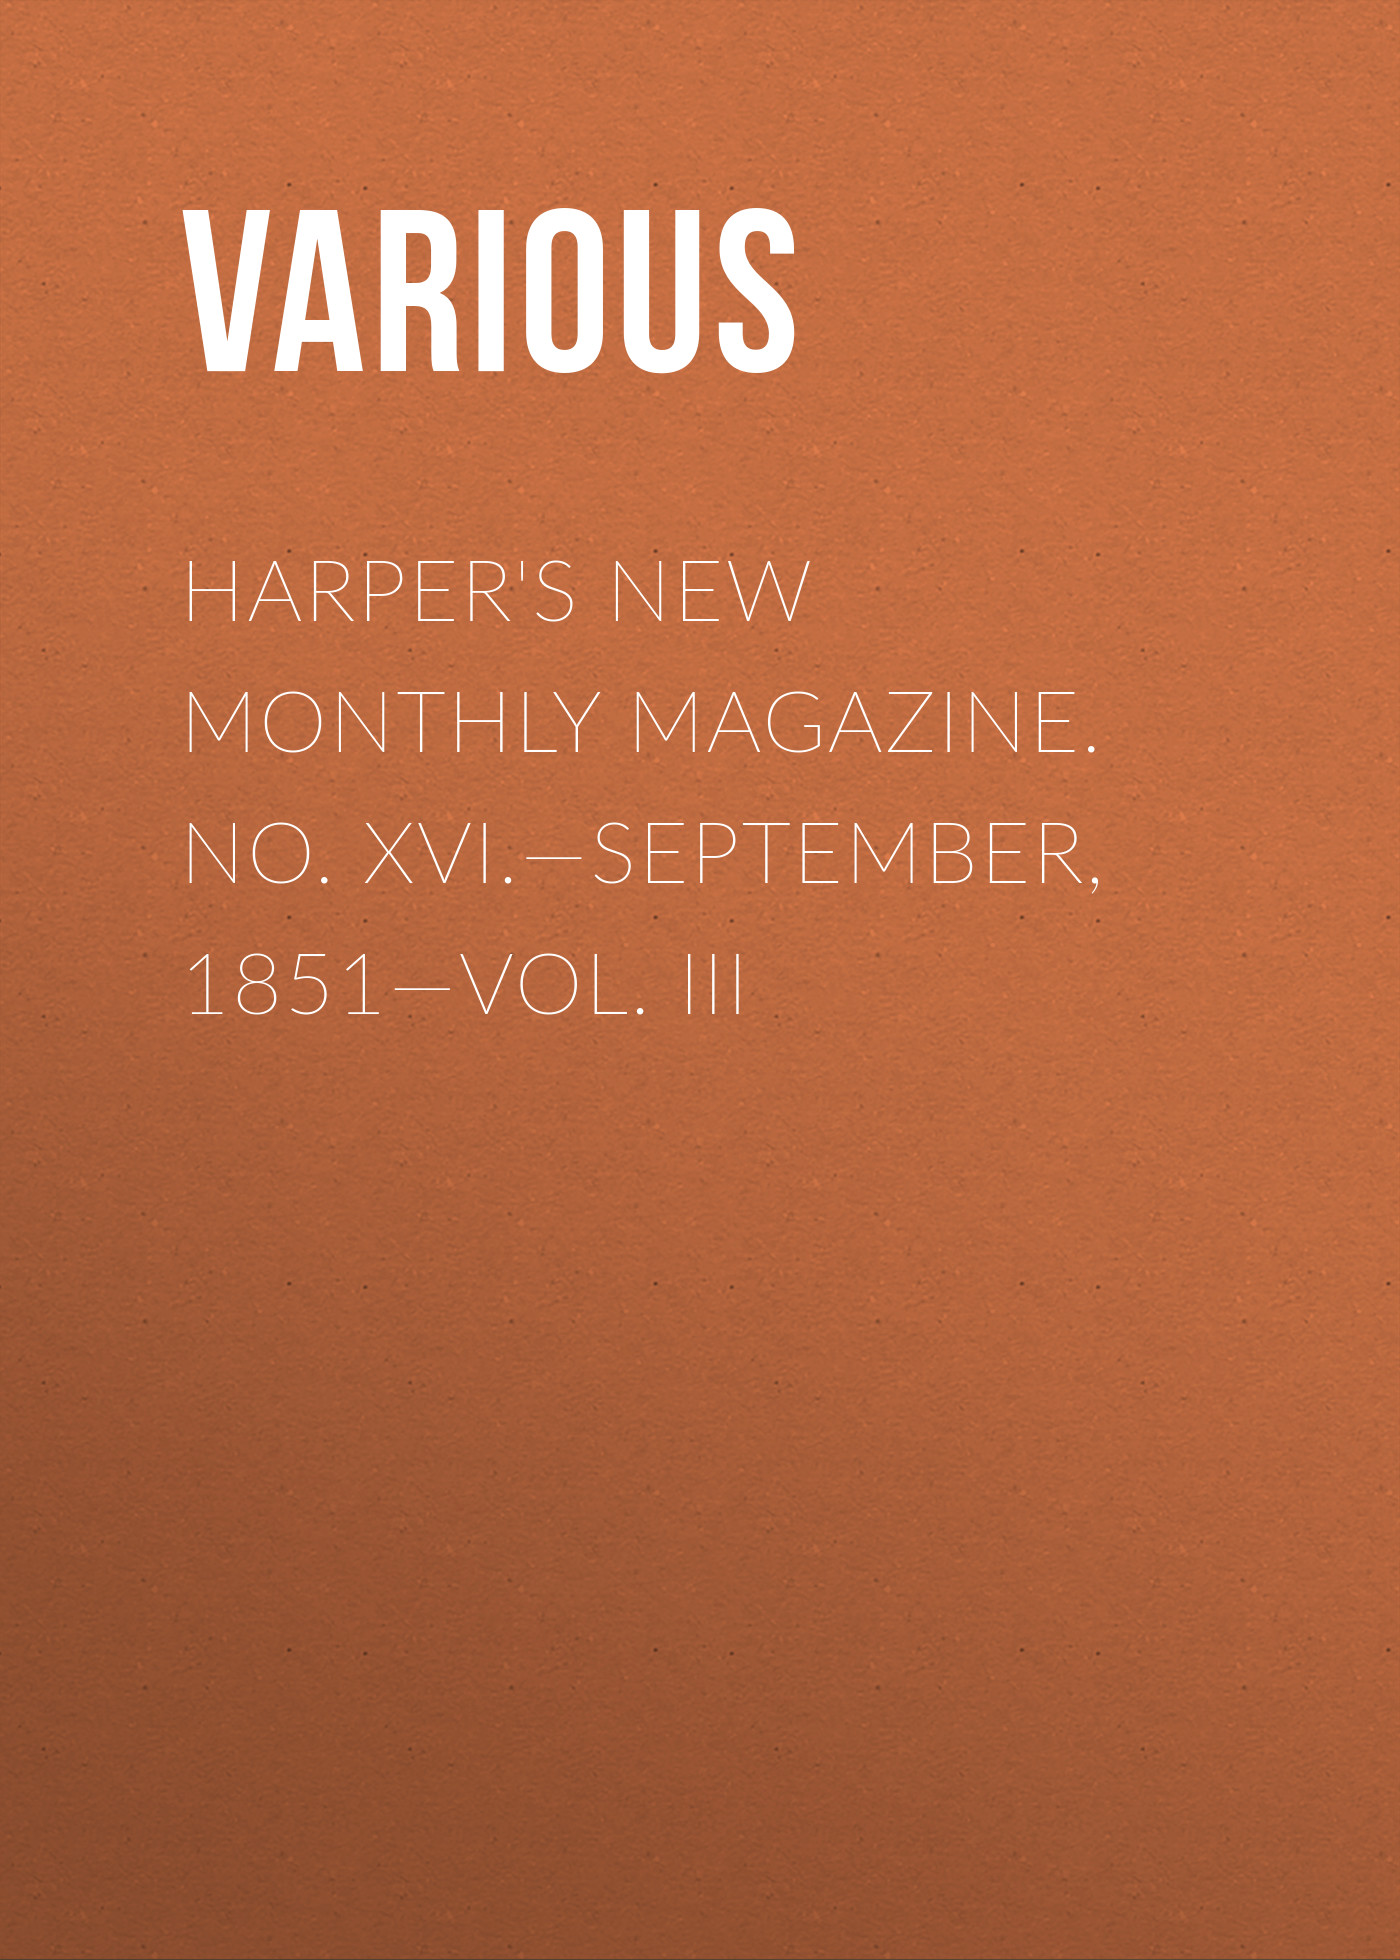 Фото - Various Harper's New Monthly Magazine. No. XVI.—September, 1851—Vol. III various harper s new monthly magazine no xxiii april 1852 vol iv